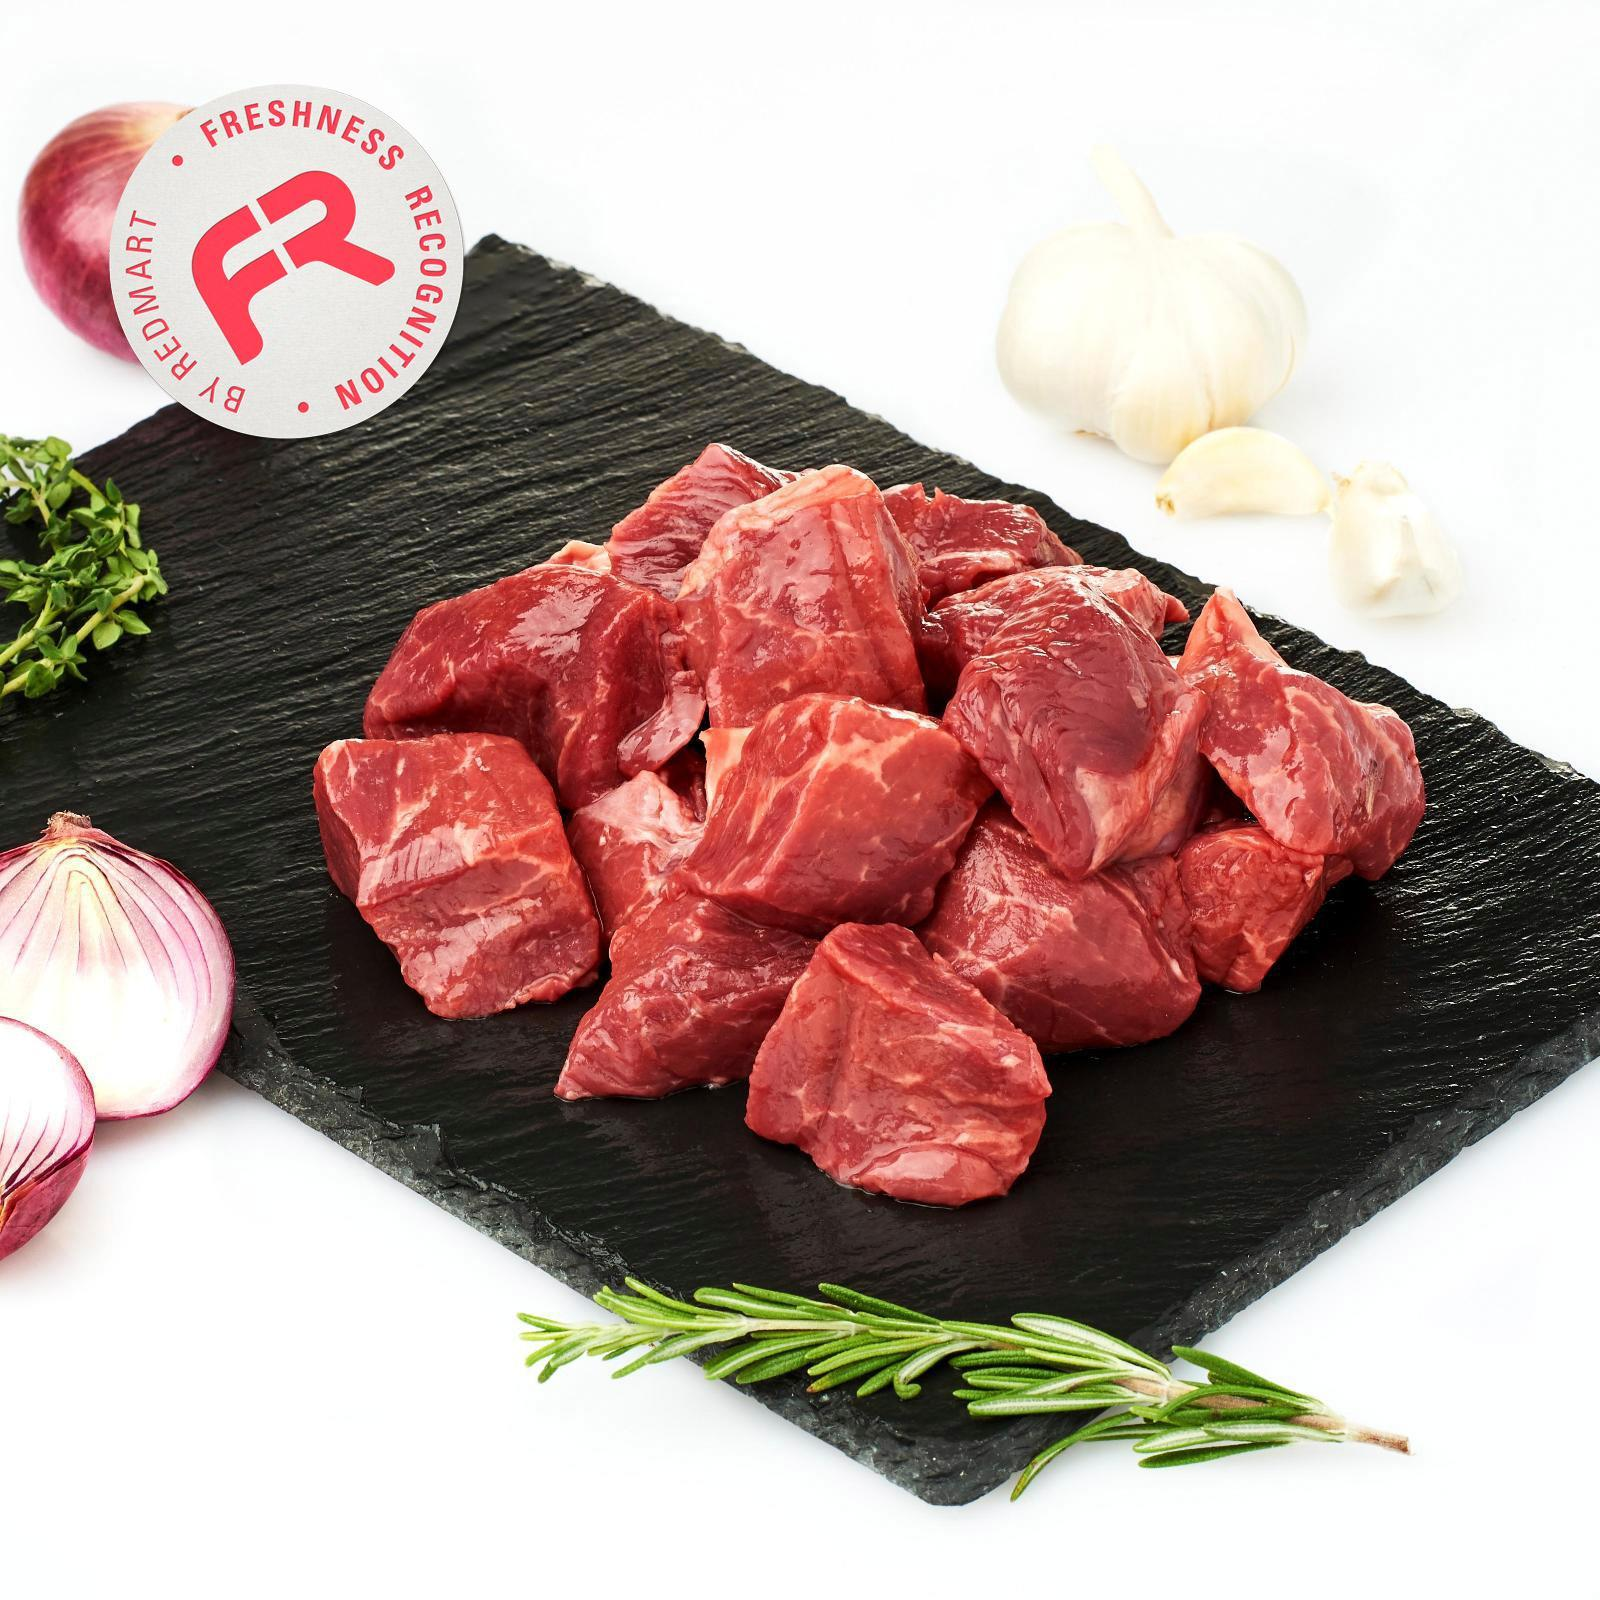 Redmart Grass Fed Angus Diced Beef - New Zealand By Redmart